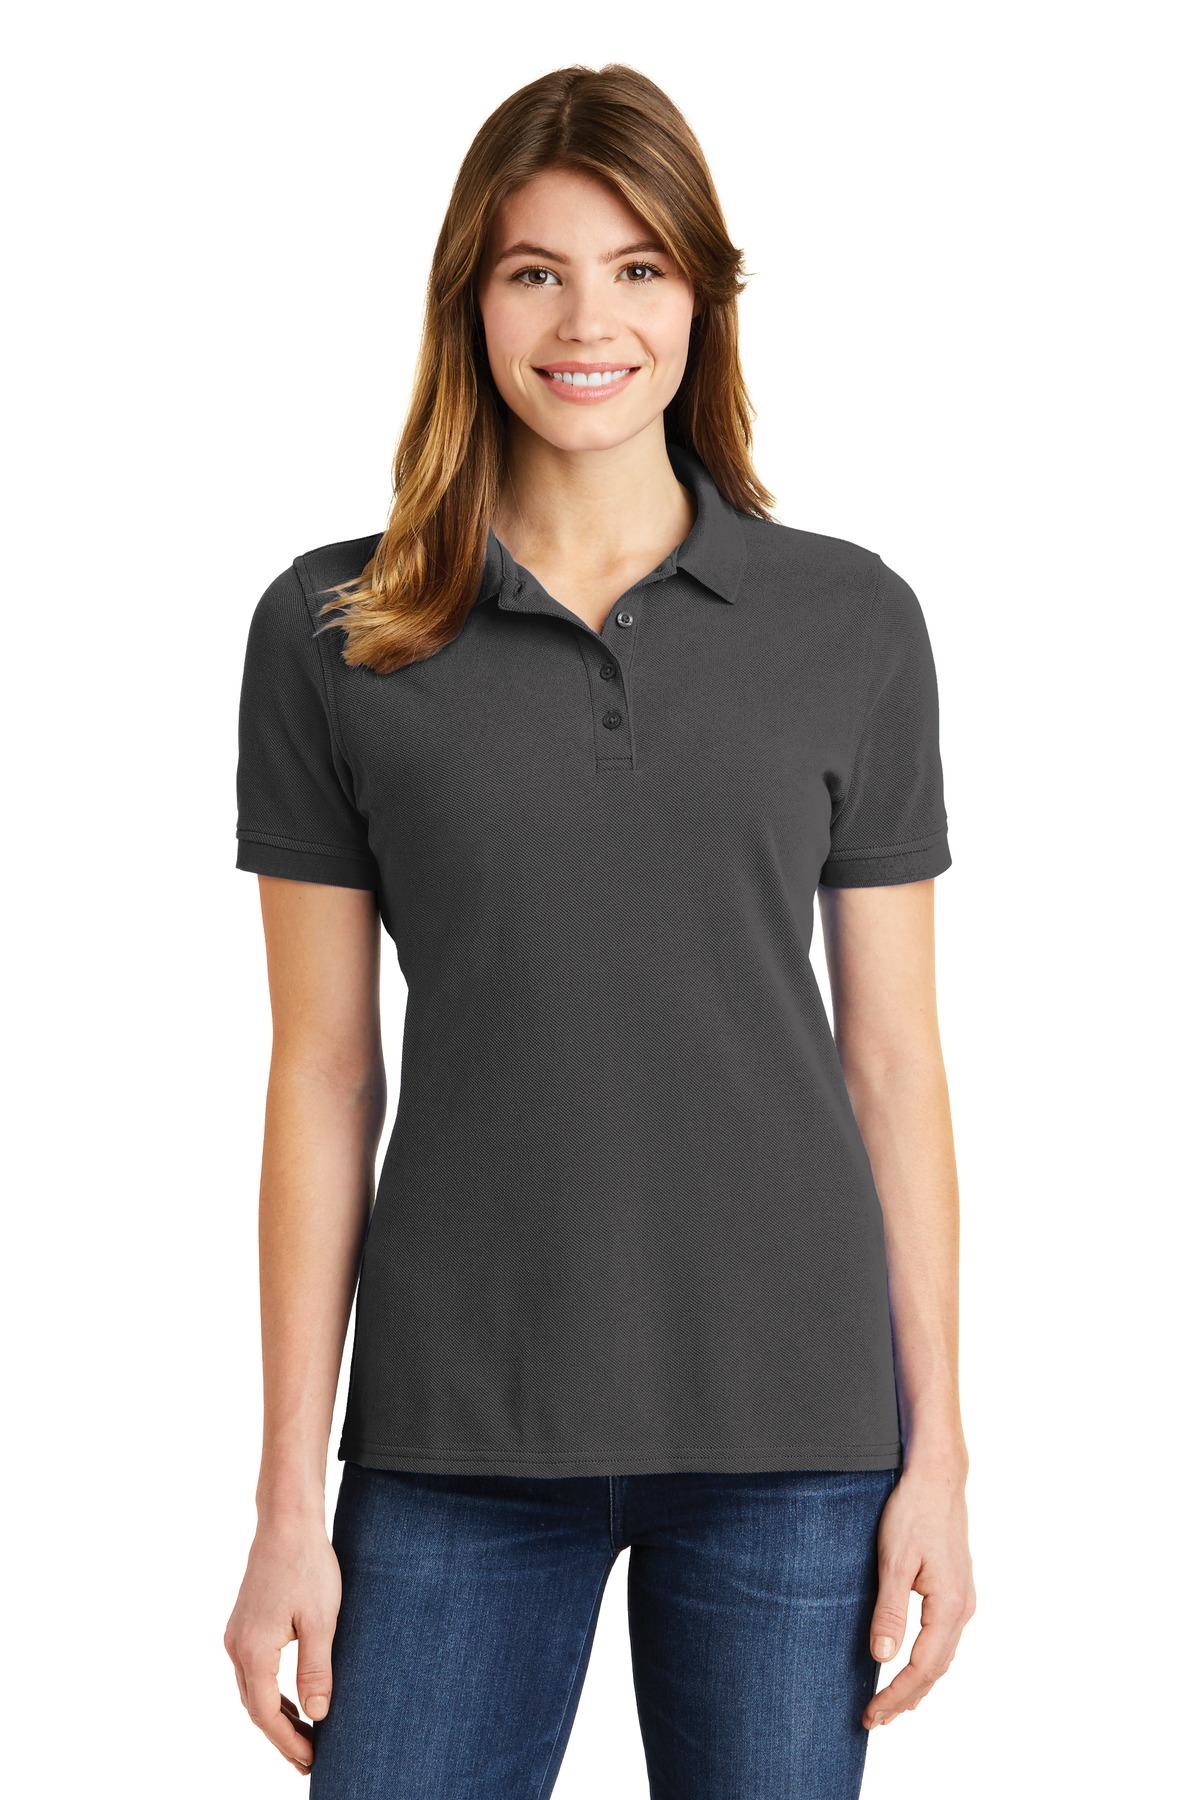 Port & Company ®  Ladies Combed Ring Spun Pique Polo. LKP1500 - Charcoal